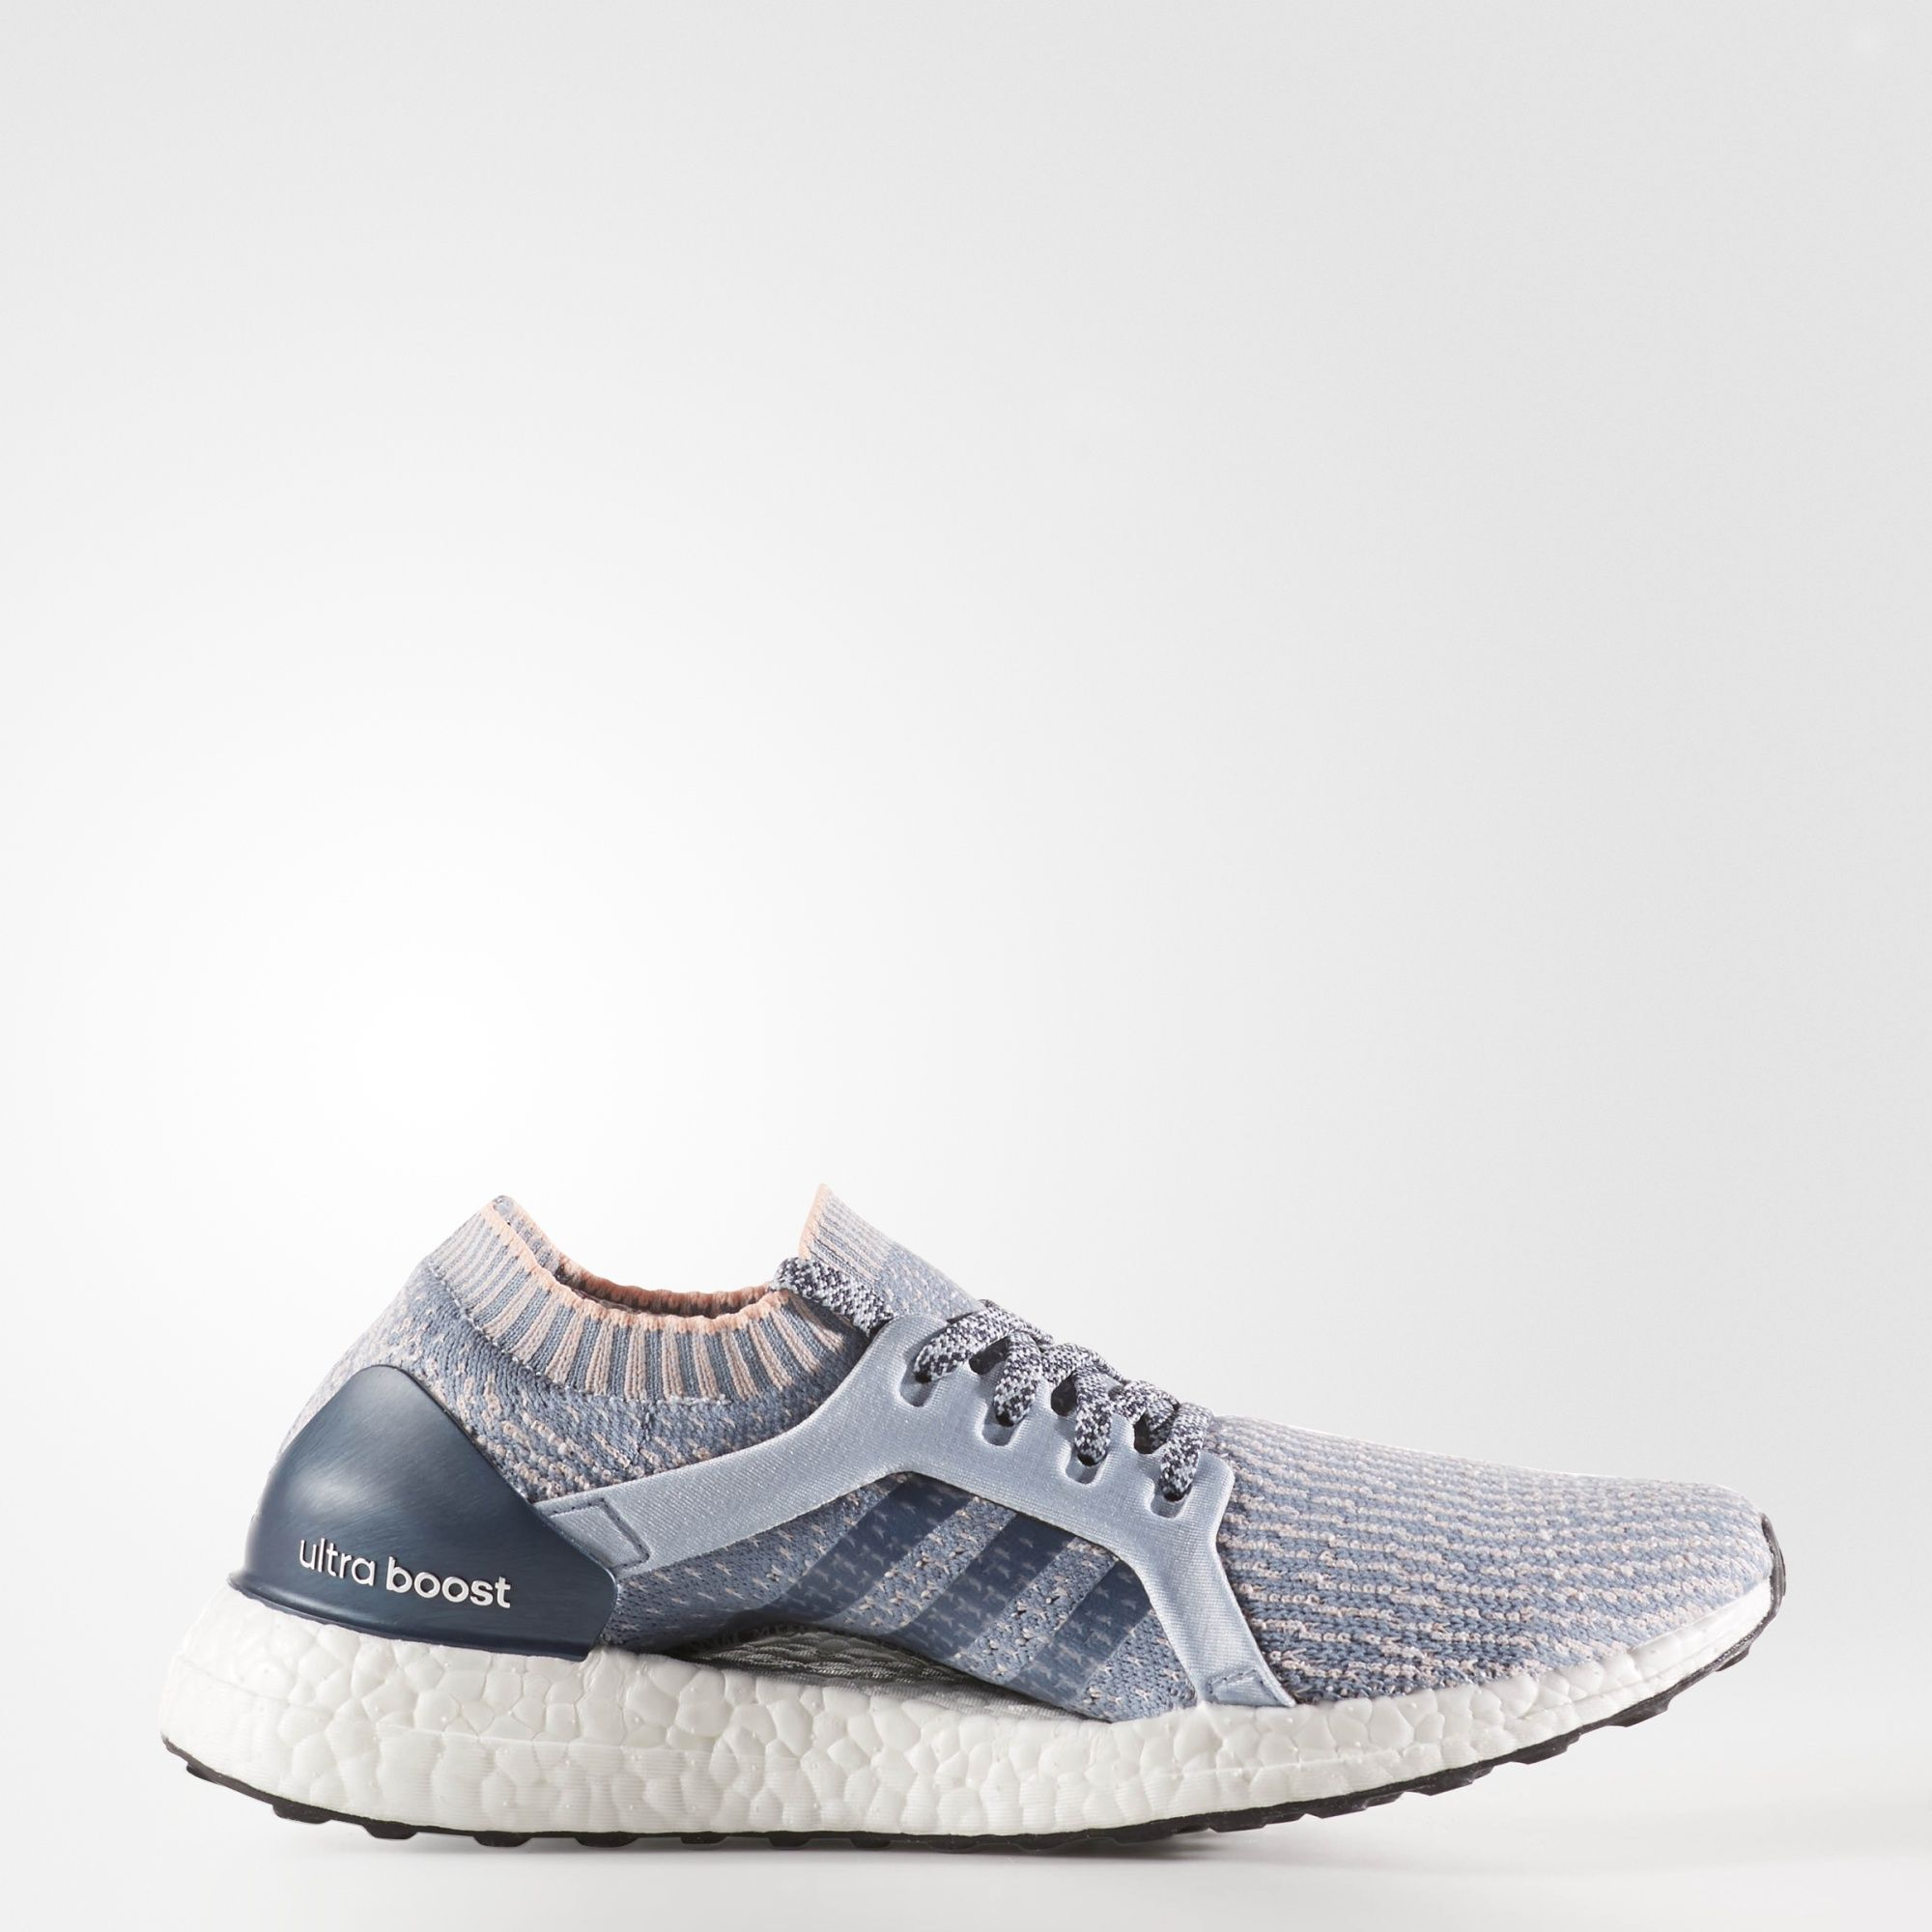 51f16b1902940 adidas - UltraBOOST X Clima Shoes